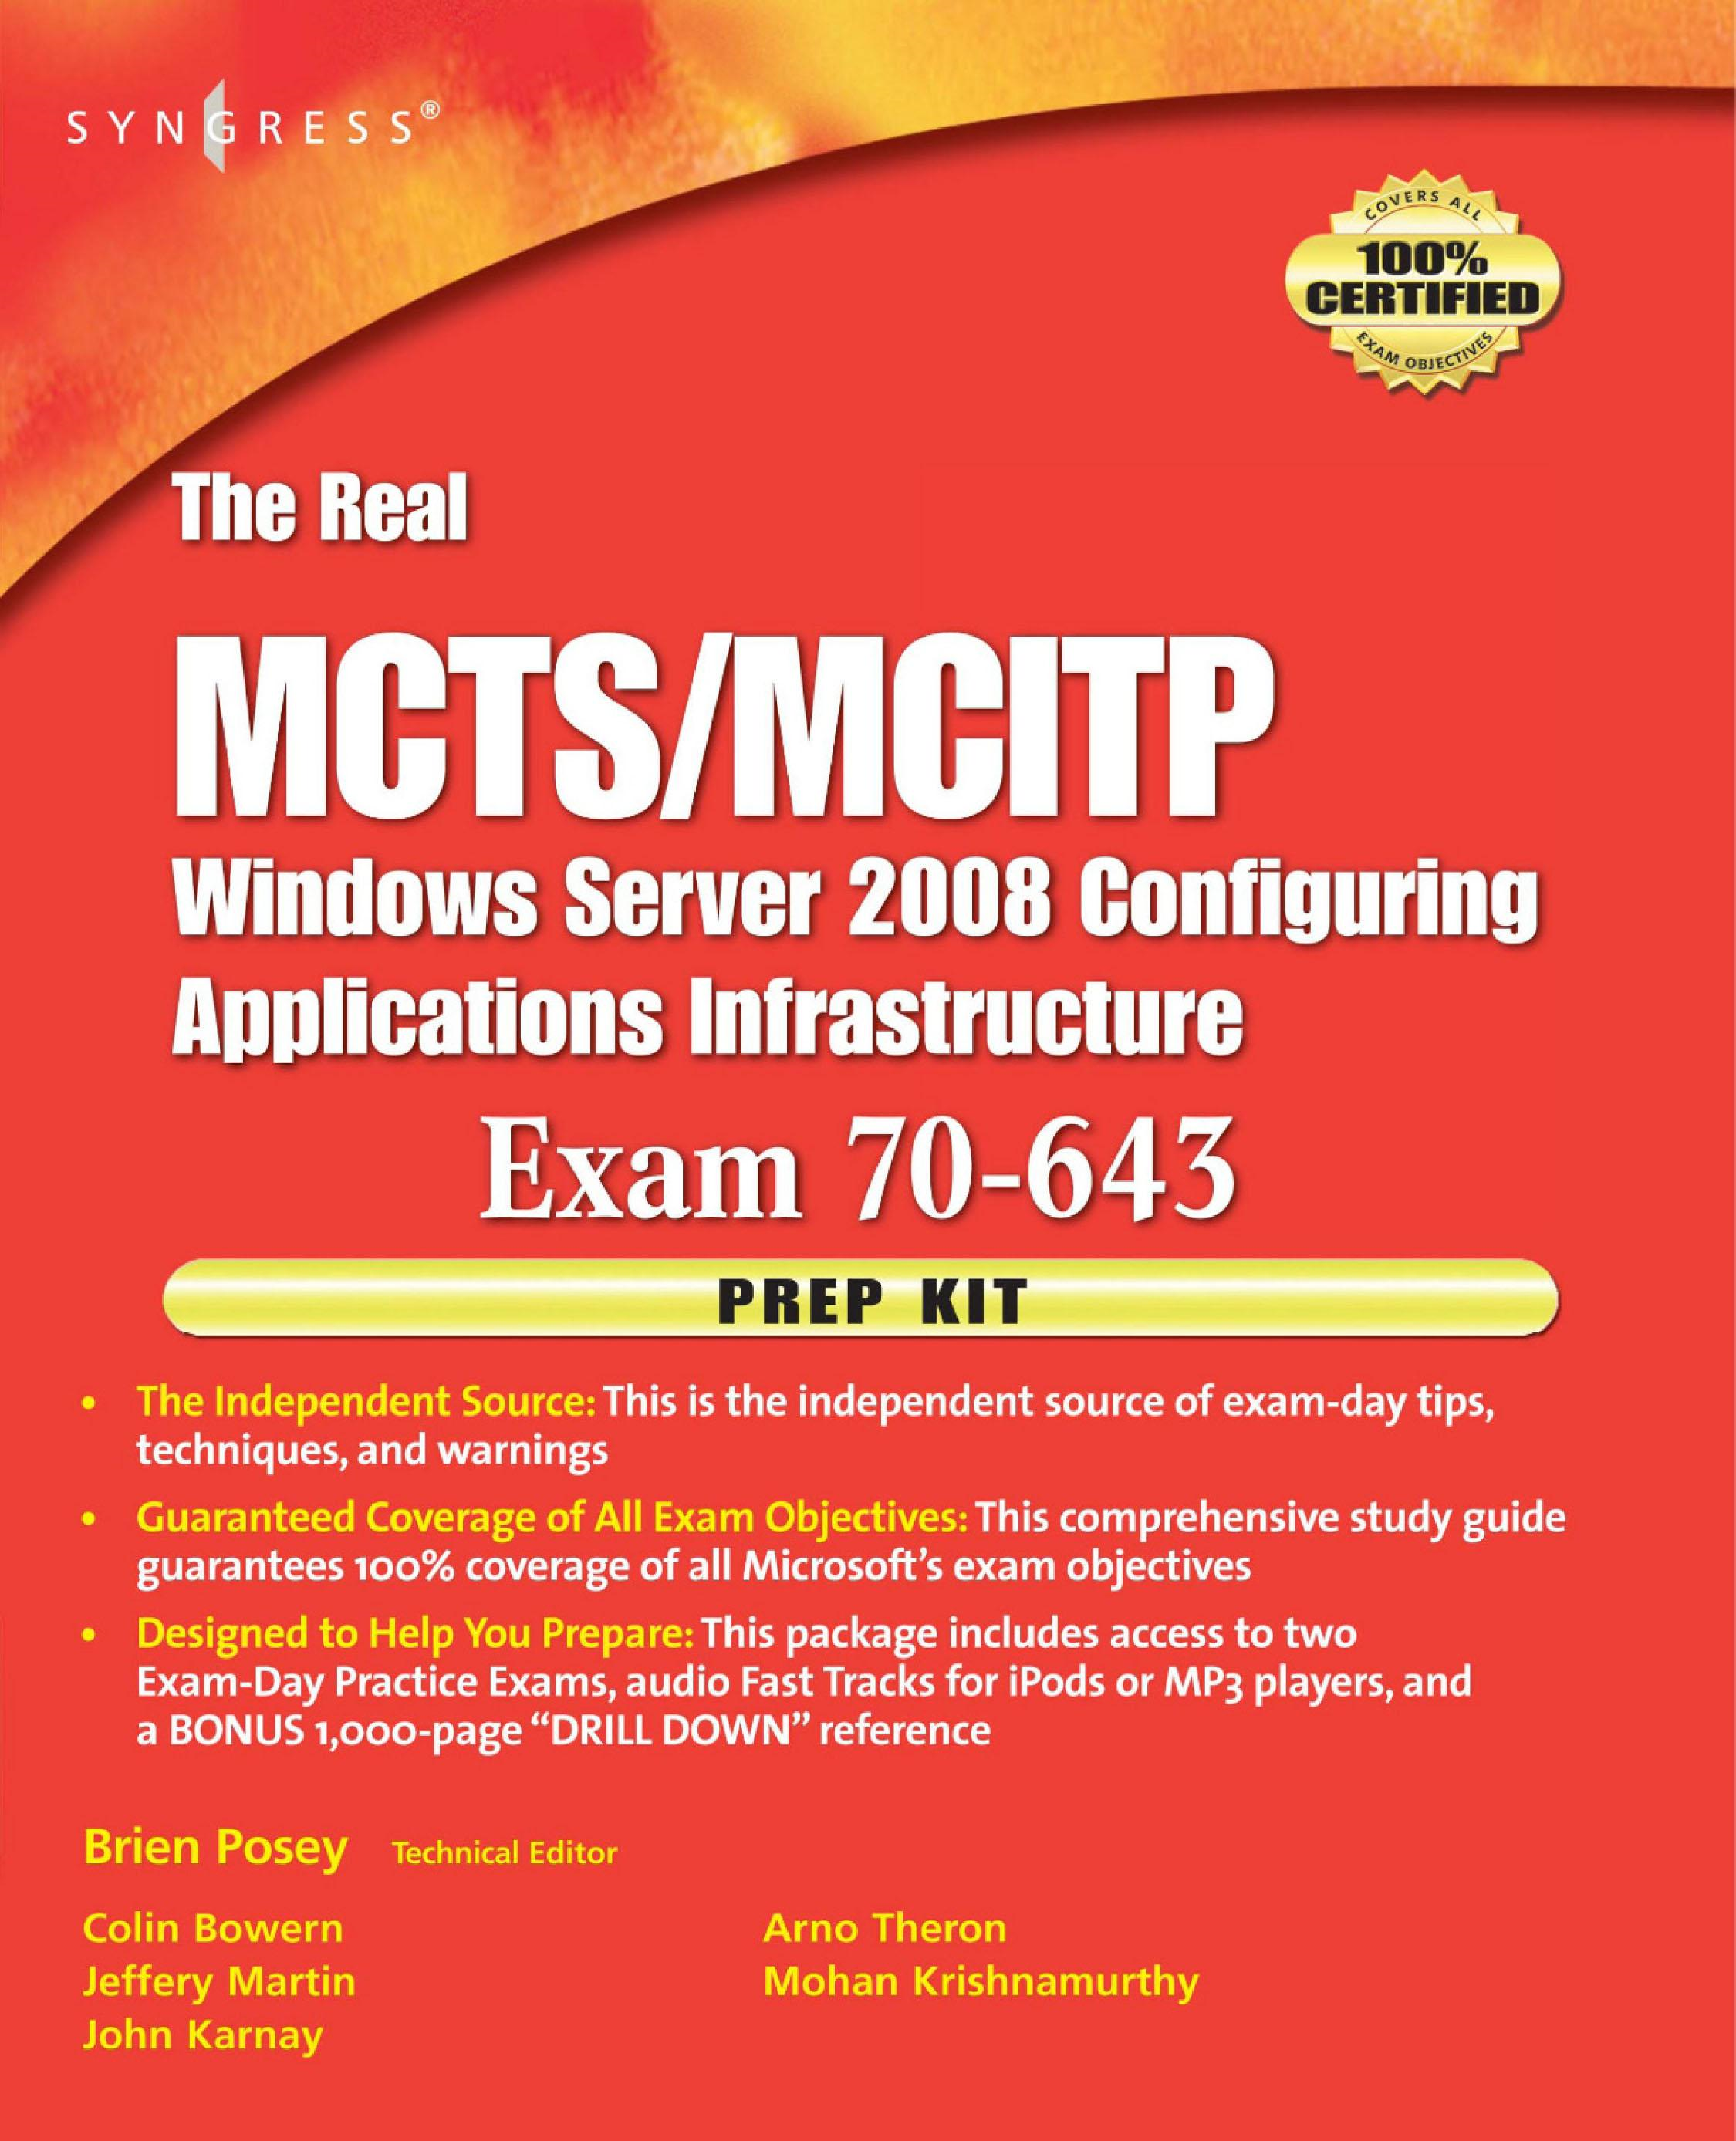 The Real MCTS/MCITP Exam 70-643 Prep Kit: Independent and Complete Self-Paced Solutions